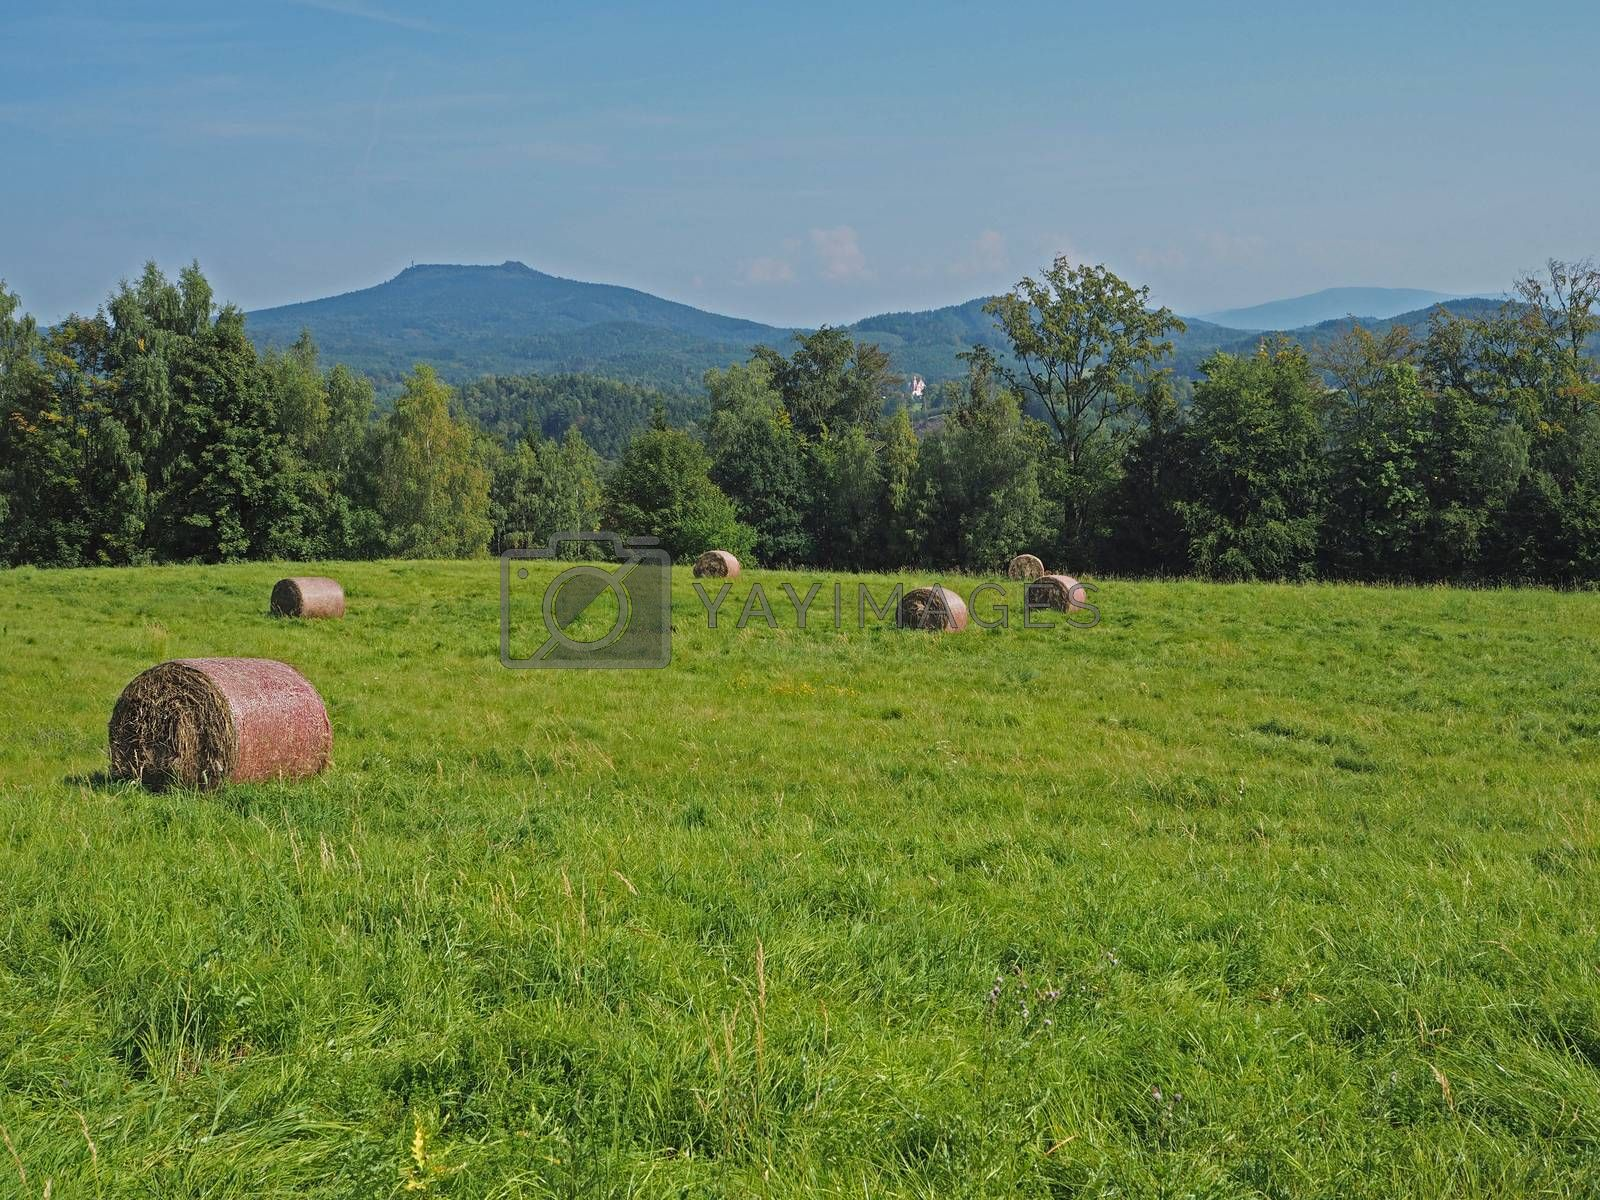 straw bale on green grass meadow with tree, hills and blue sky - summer idyllic landscape